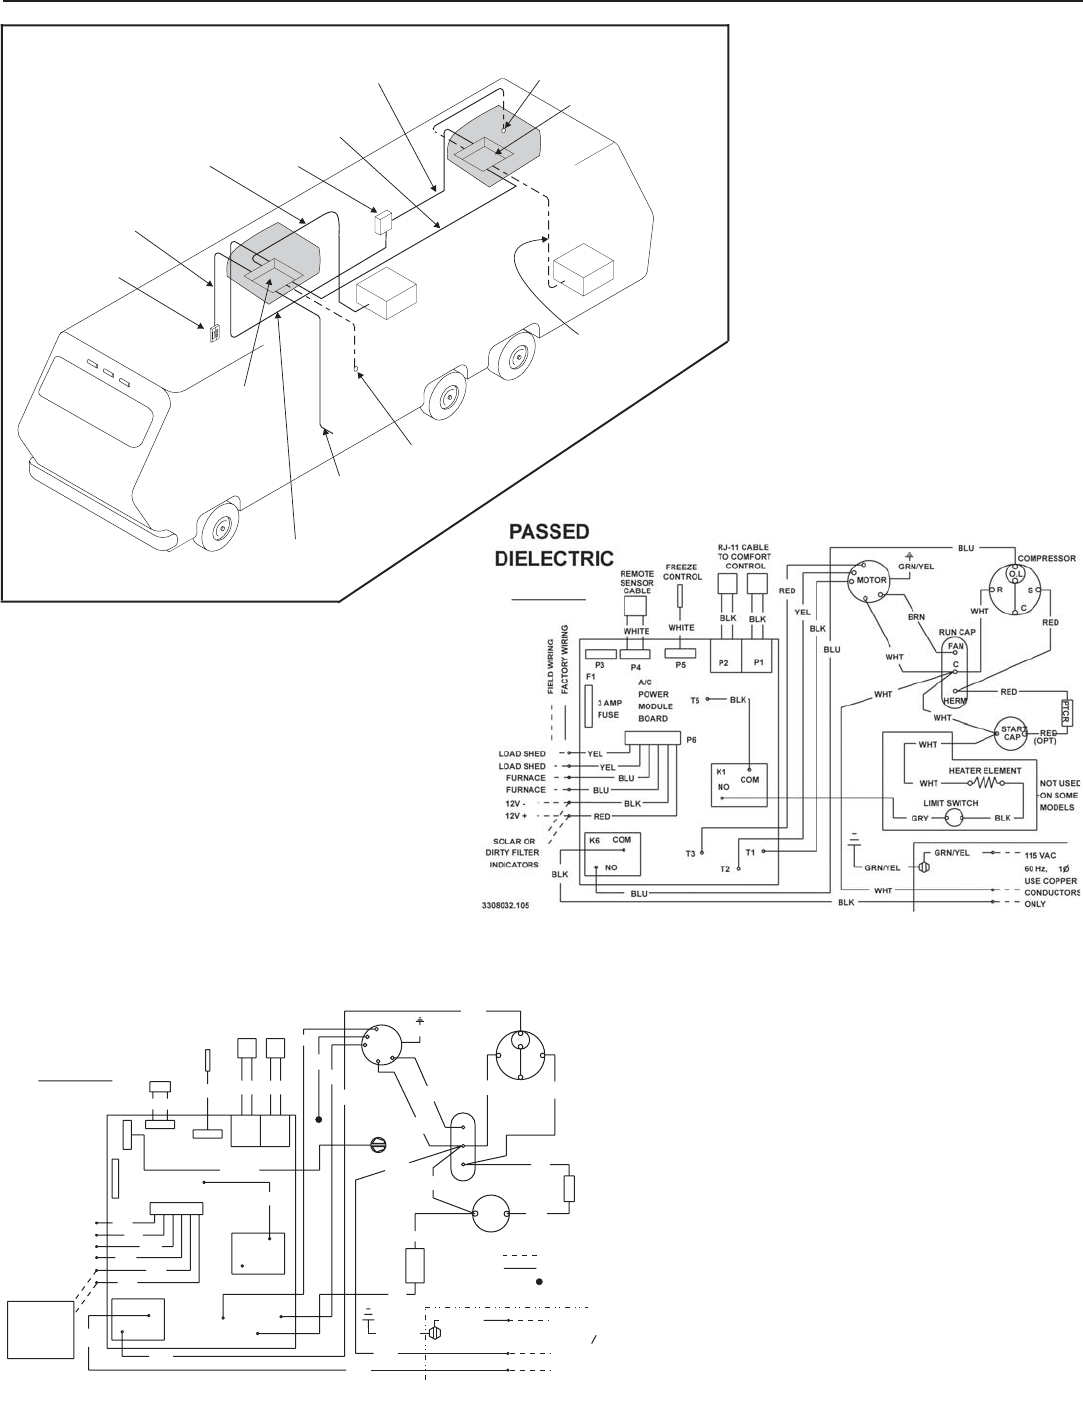 Page 16 of Dometic Air Conditioner 630515.331 User Guide ... Duo Therm Wiring Schematics on honeywell wiring schematics, breaker wiring schematics, thermostat wiring schematics, frigidaire wiring schematics, goodman wiring schematics, coleman wiring schematics, rheem wiring schematics, compressor wiring schematics, maytag wiring schematics, refrigerator wiring schematics, jayco wiring schematics, dometic air conditioner wiring schematics, trane wiring schematics, electrical wiring schematics, ac wiring schematics, ruud wiring schematics, onan wiring schematics, gibson wiring schematics,